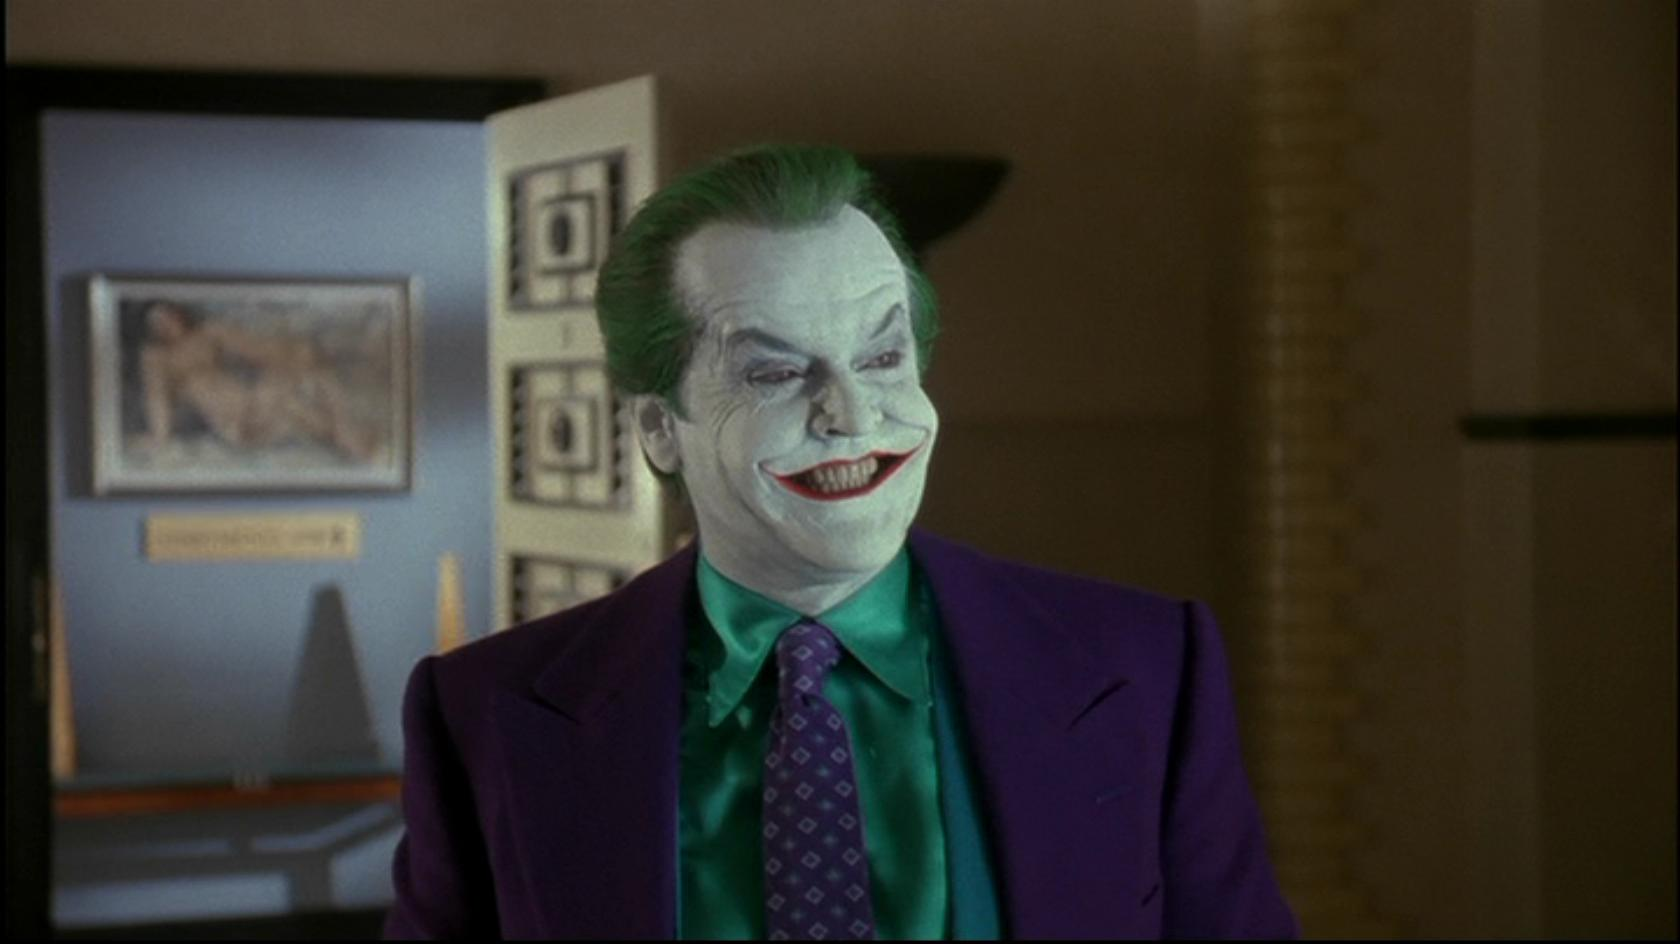 Jim Carrey Joker